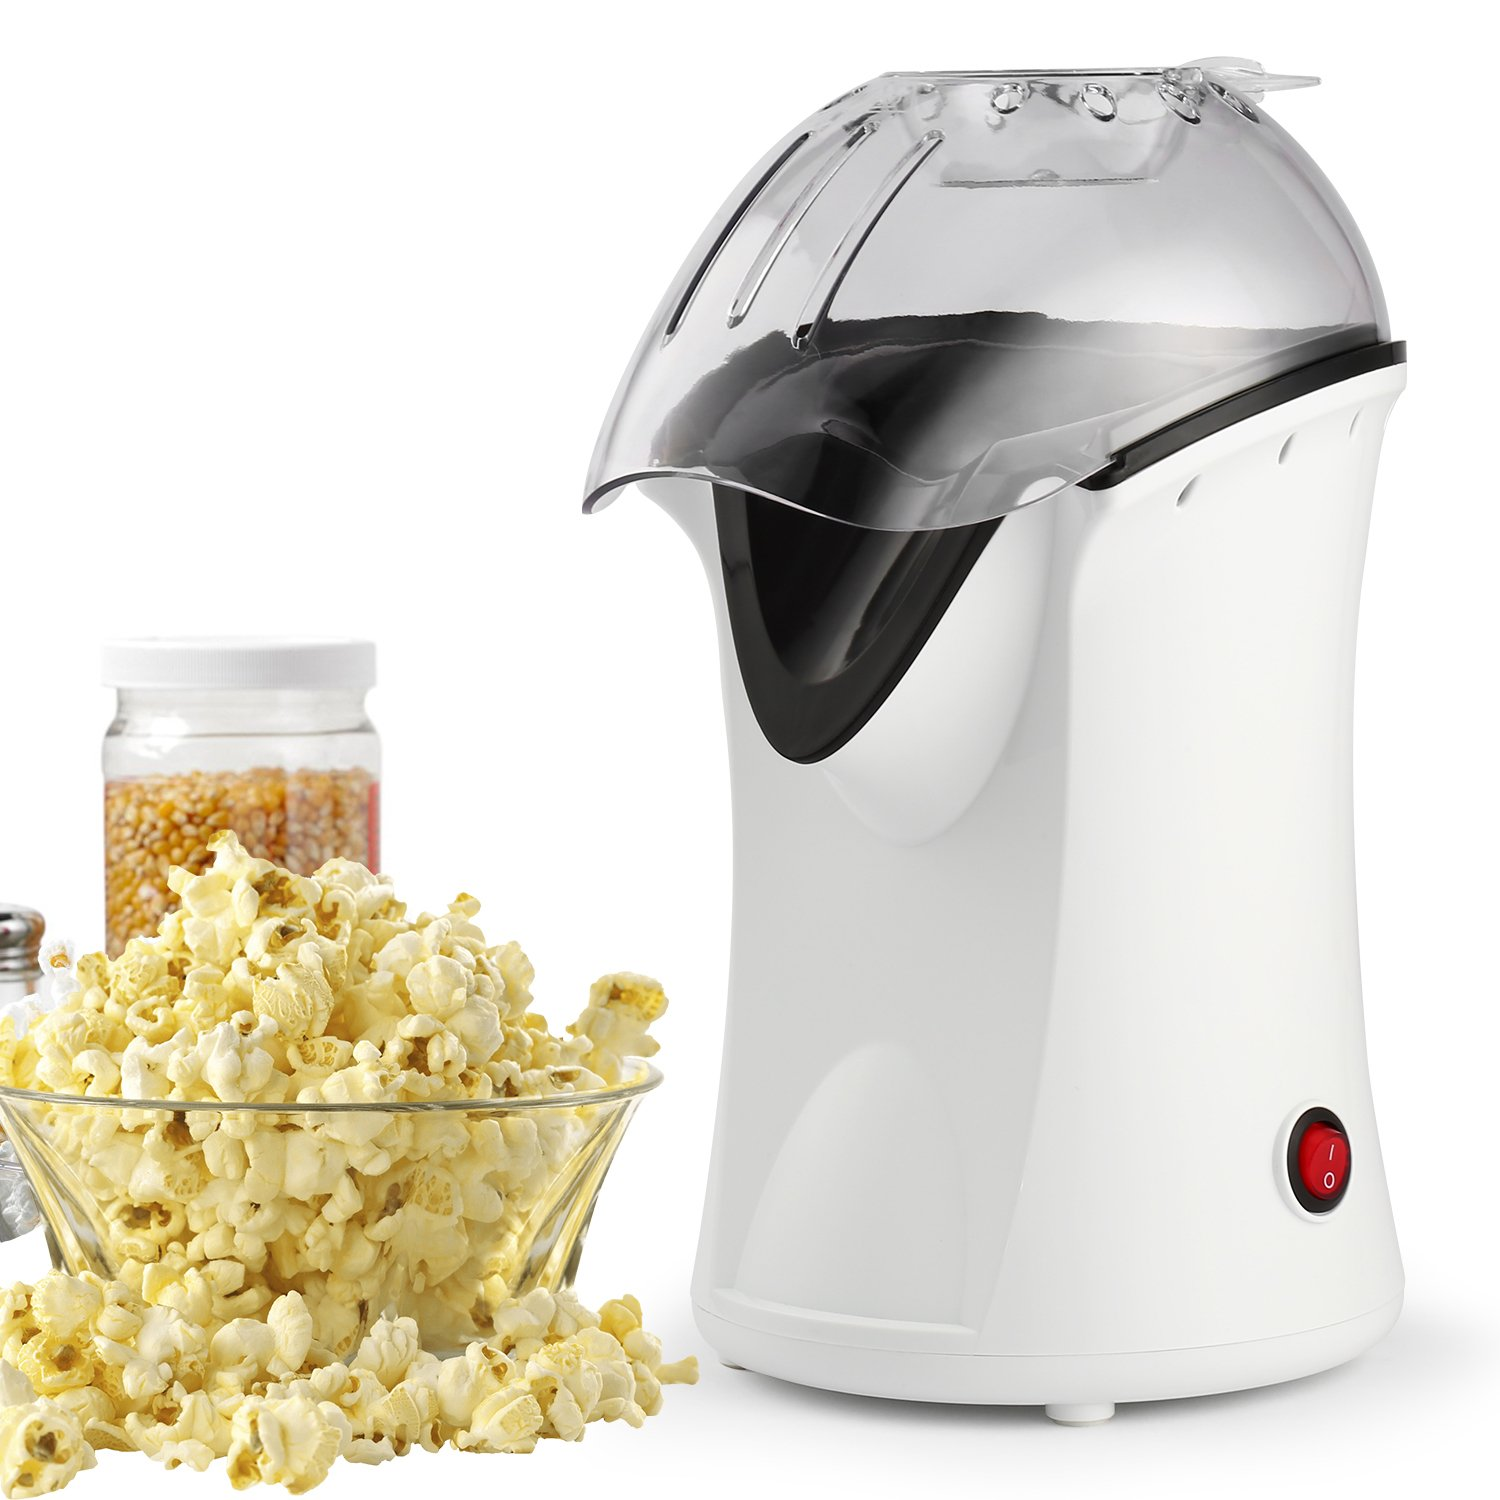 Popcorn Machine, 110V 1200W Healthy Hot Air Popcorn Maker, Best Home Popcorn Popper with Wide Mouth Design (White)